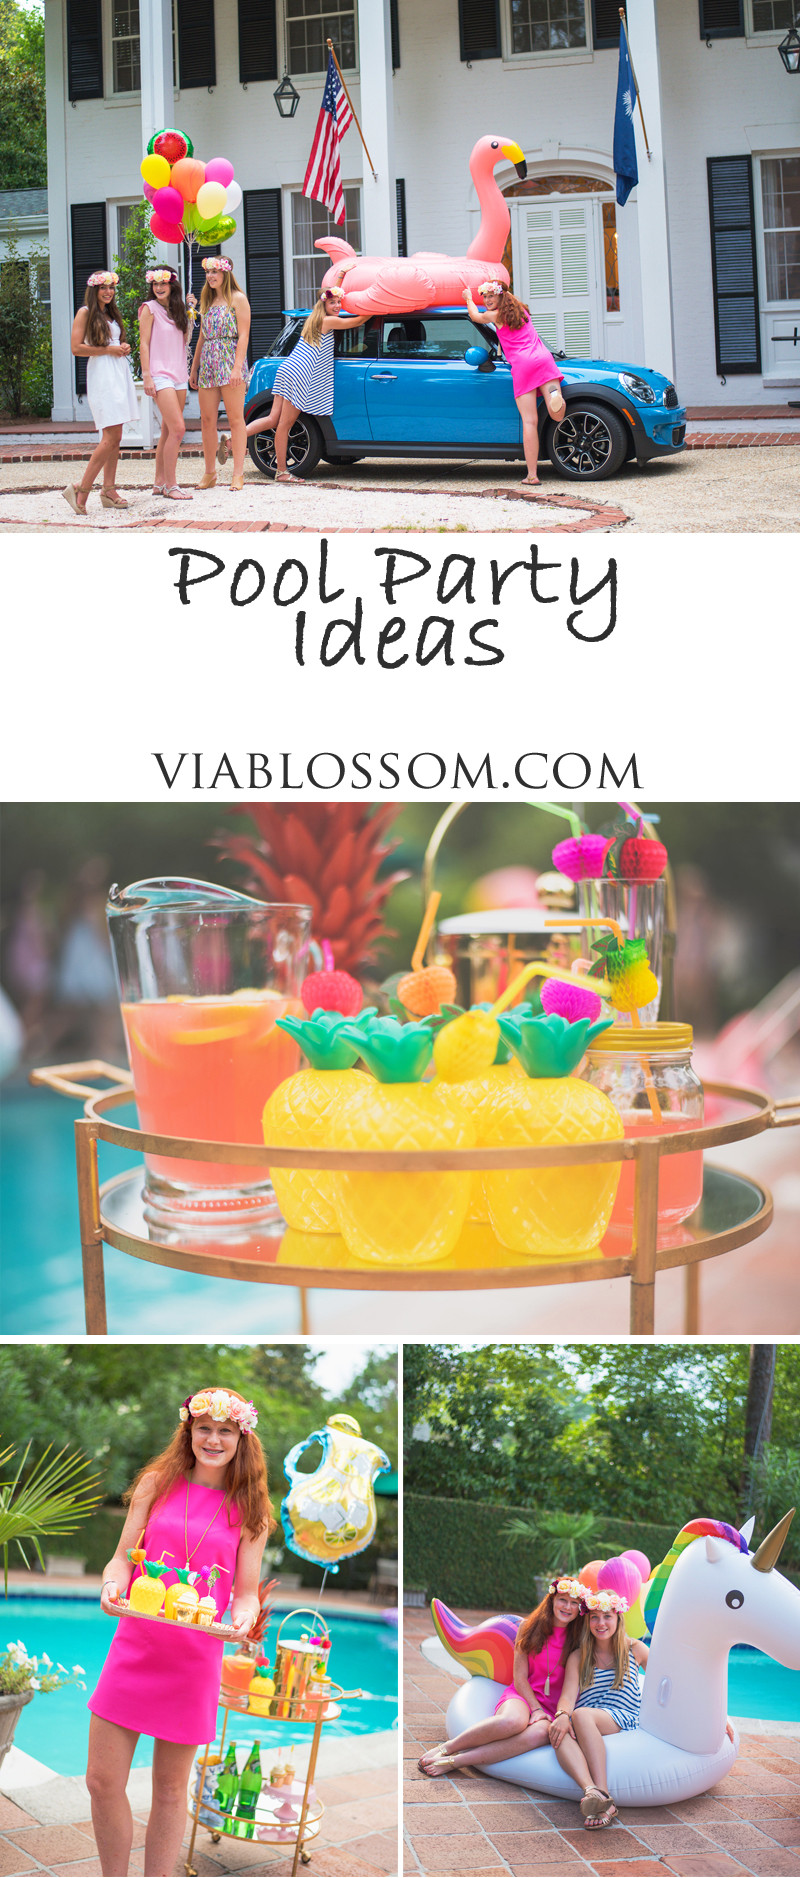 Pool Party Decorations Ideas  Pool Party Ideas Via Blossom